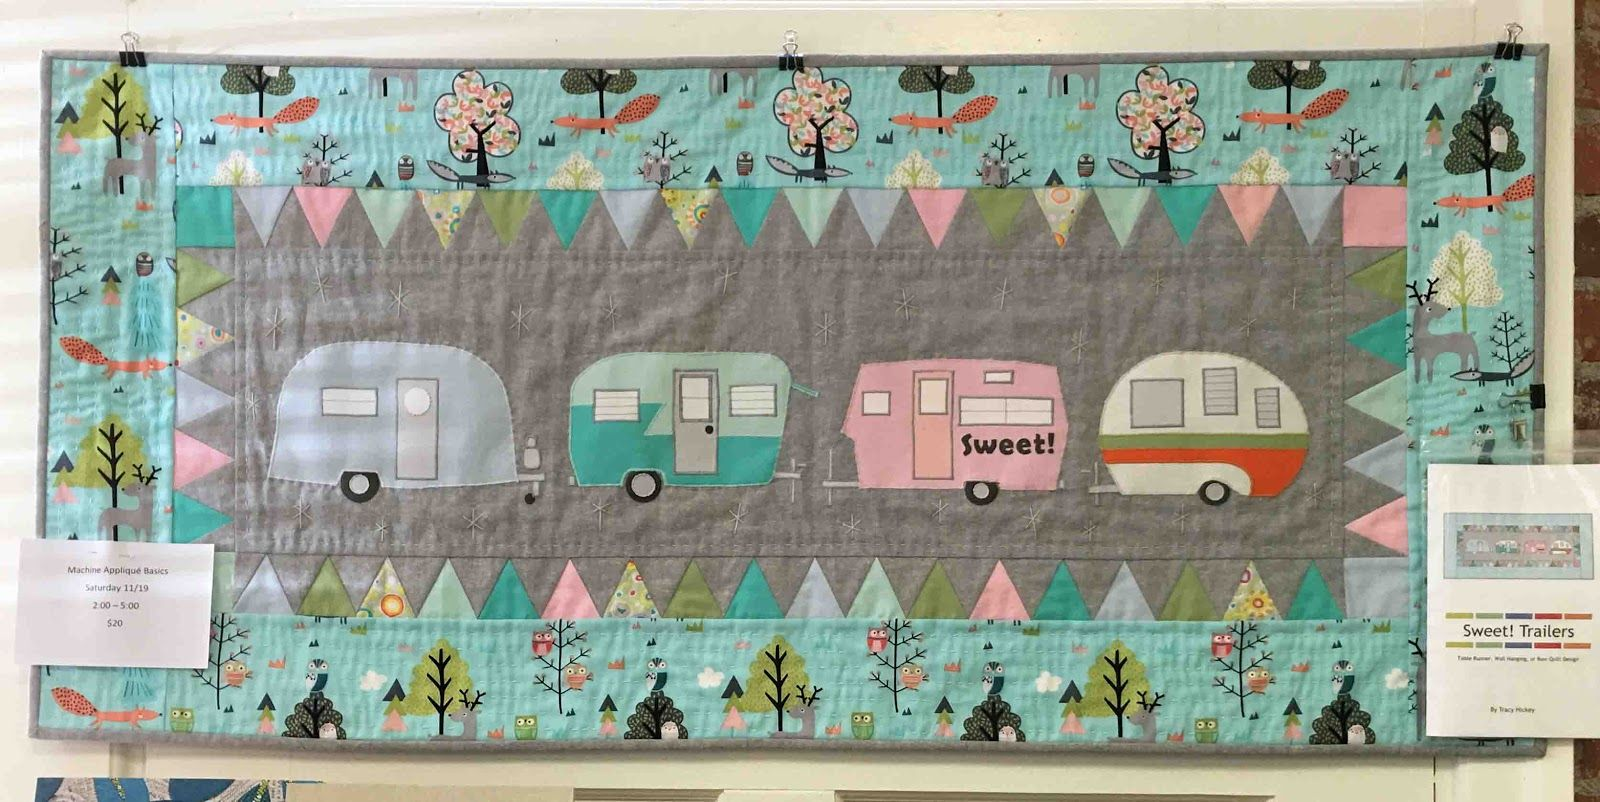 ❤ =^..^= ❤ Cat Patches | What a find on a quilt shop wall! | Q T ... : 200 quilt shops - Adamdwight.com